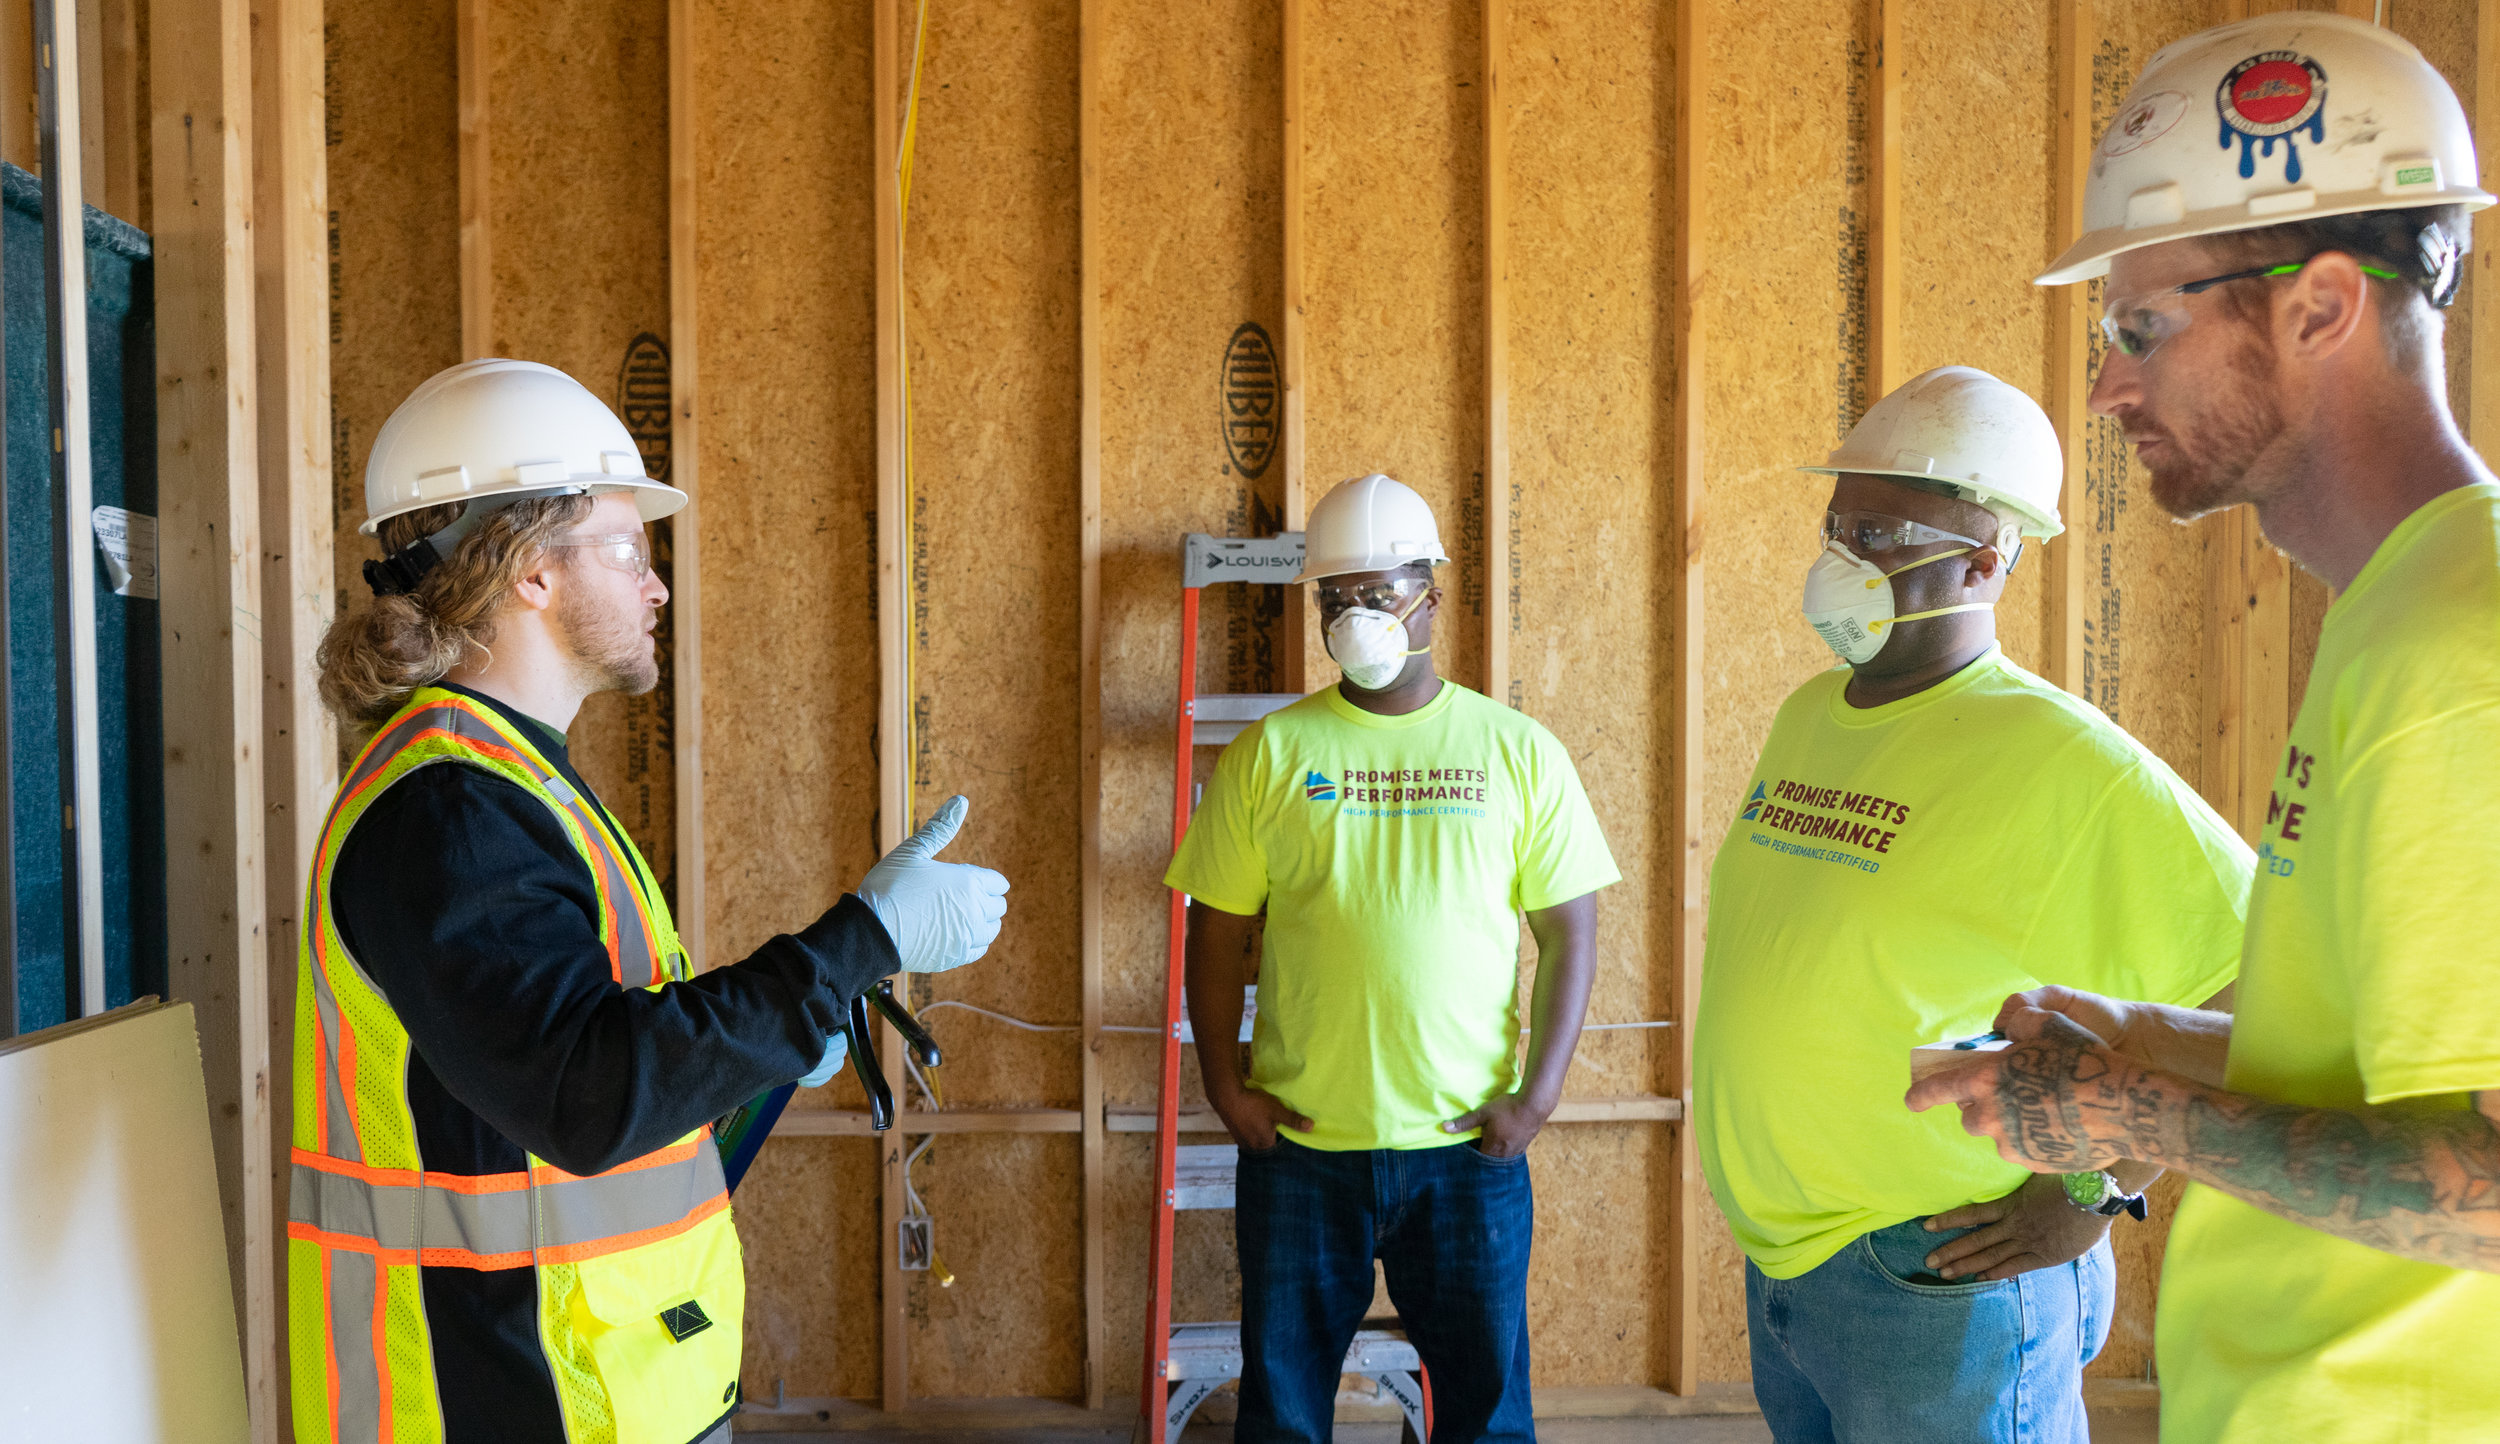 Clint Shireman attends all High Performance Insulation Training Workshops as one of our instructors. Here he is demonstrating Air Sealing and Grade I Batt Installation at the Wichita, KS workshop in April 2019.